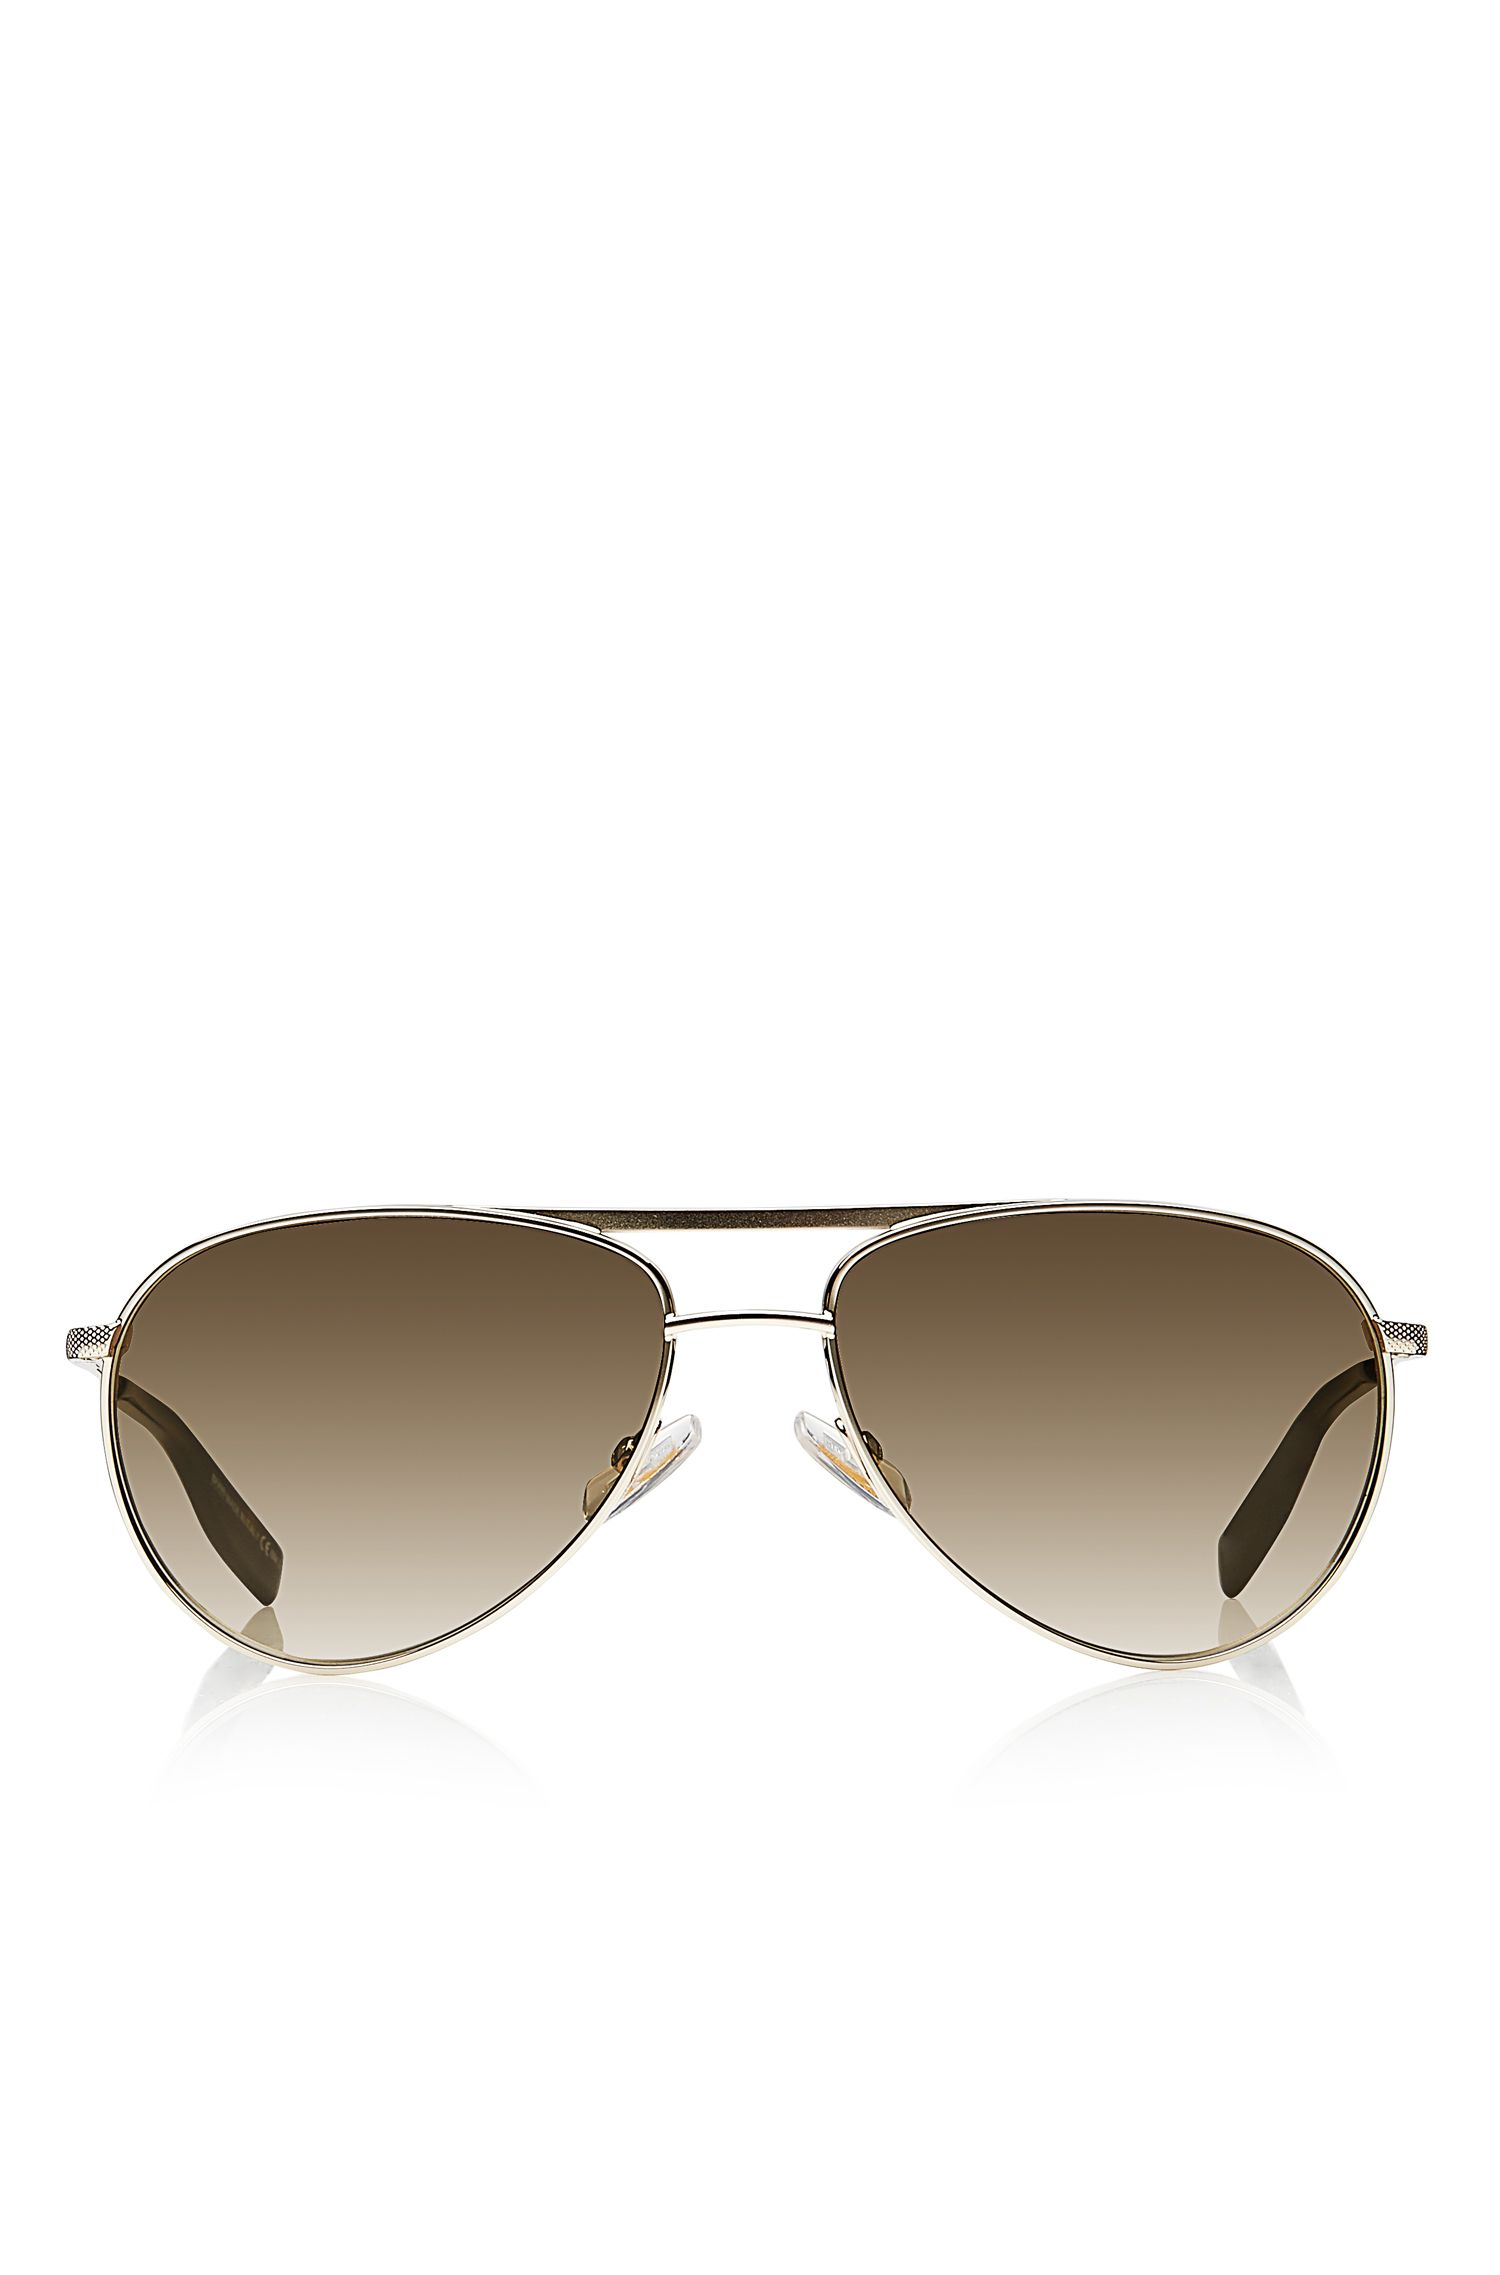 'Sunglasses' | Gold Matte Aviator Sunglasses